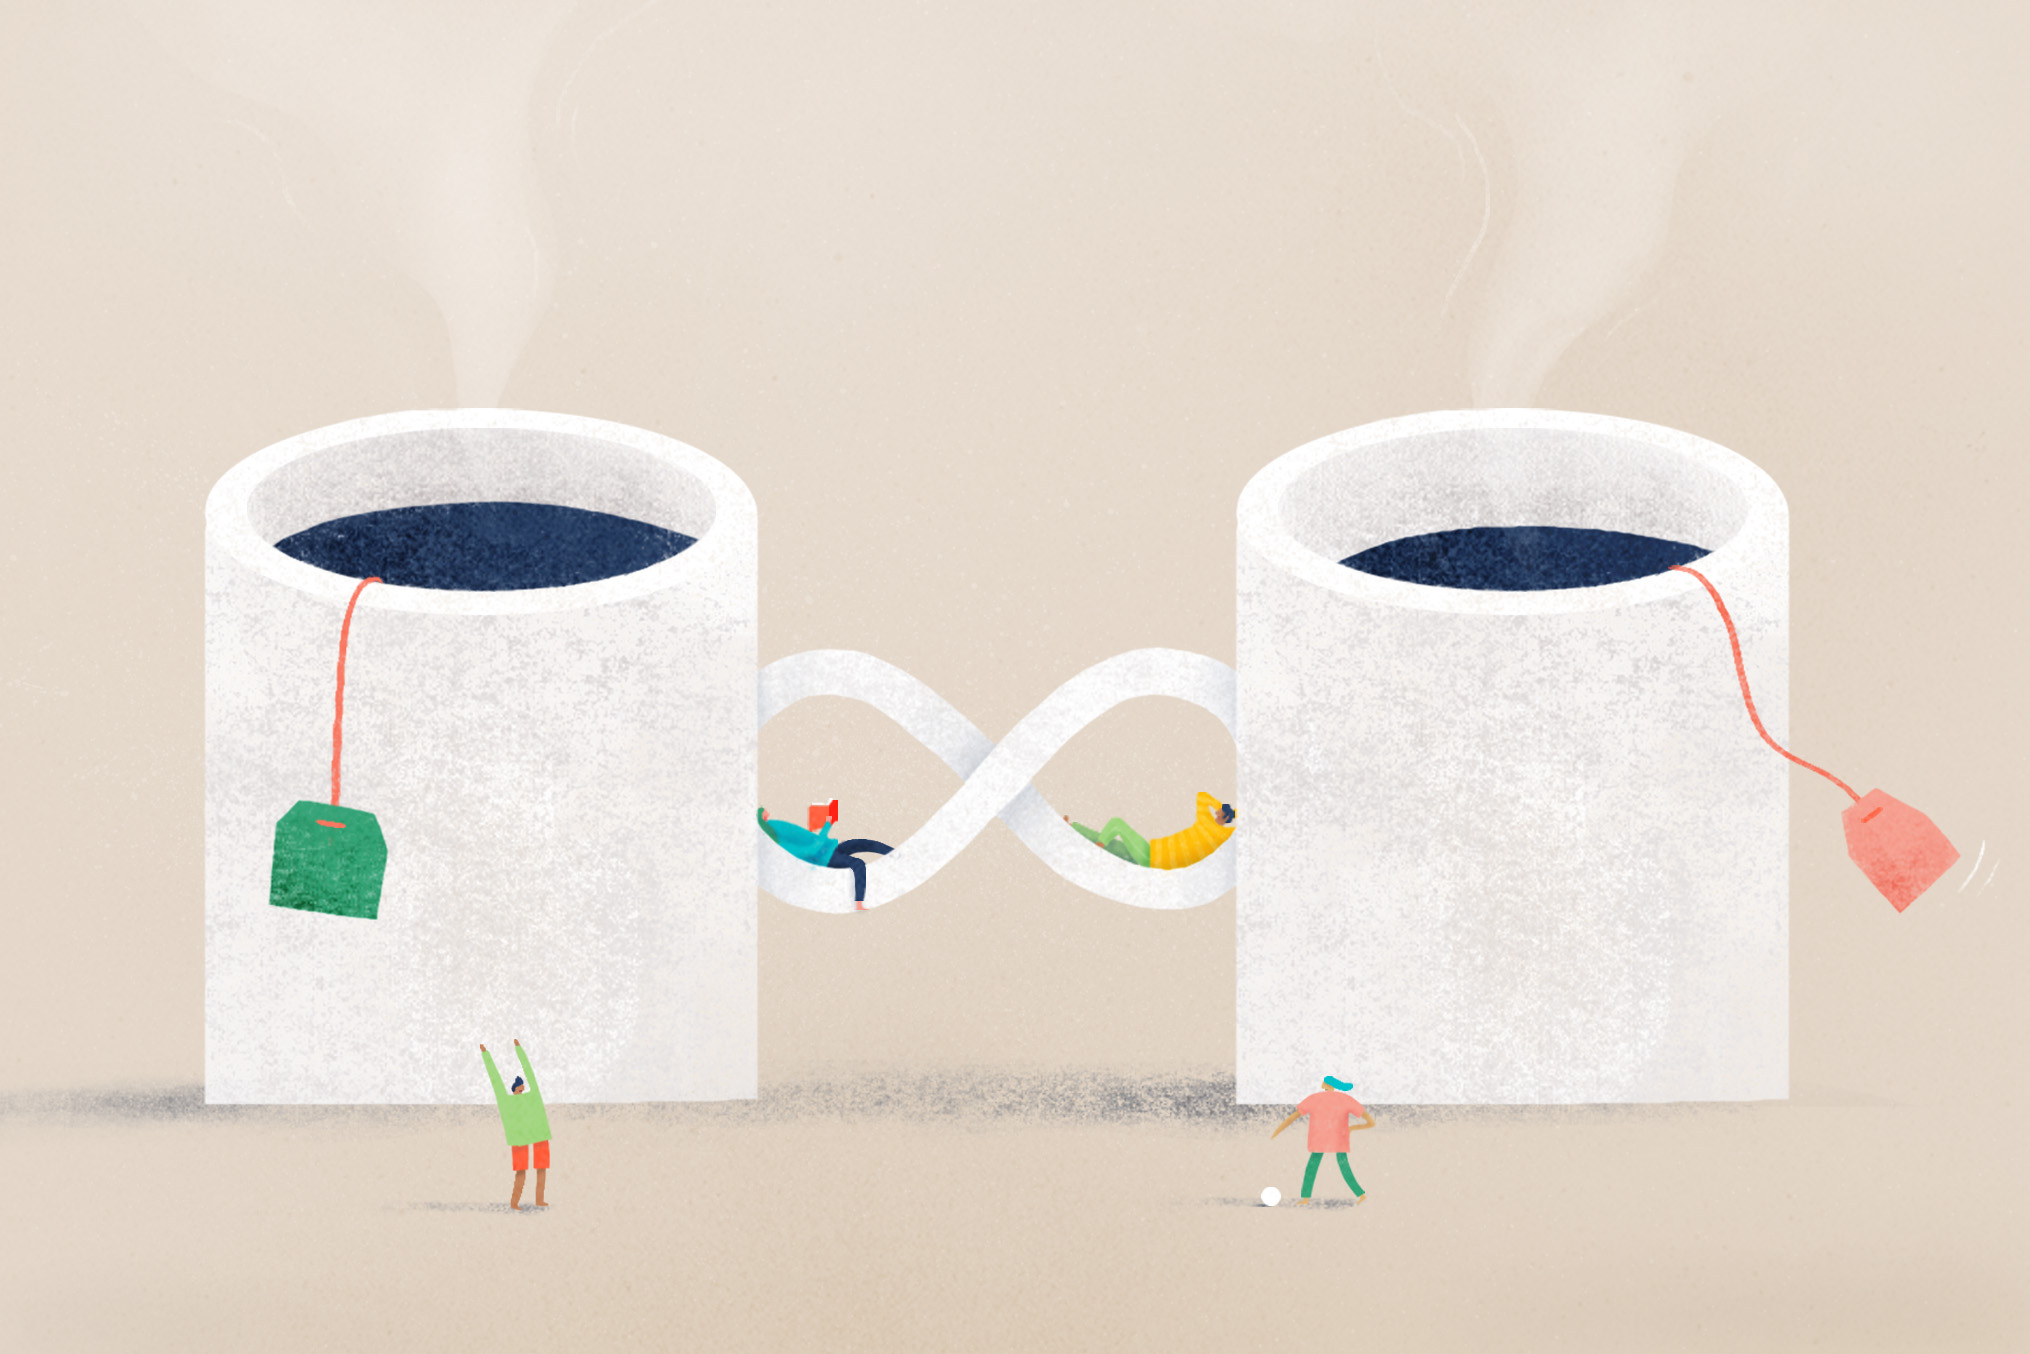 NYTimes_How to build a relationship_Living Together_Mark Conlan